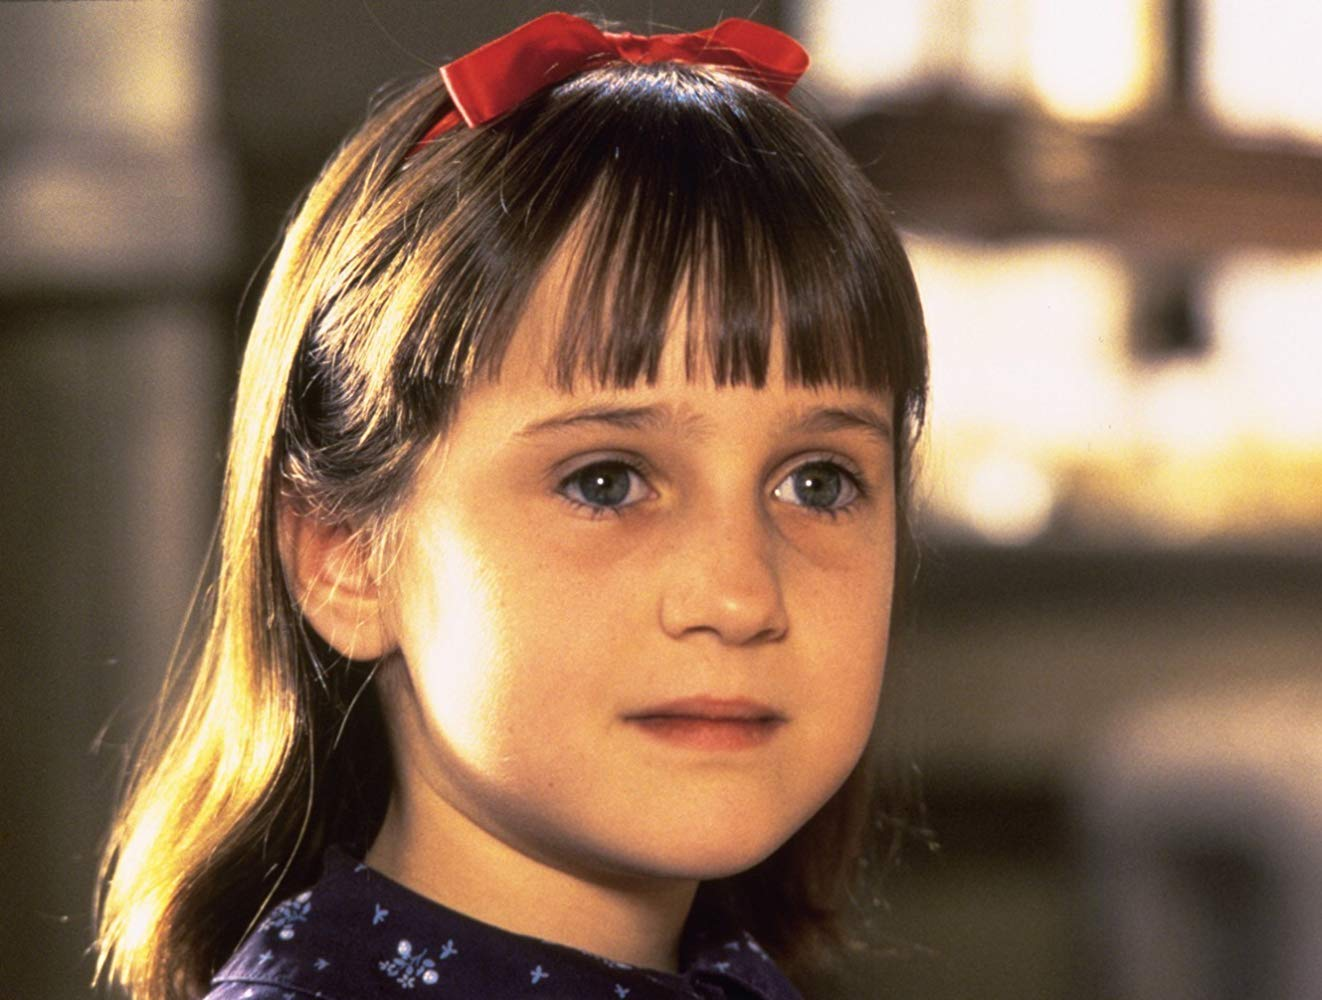 Mara Wilson as Matilda Wormwood in Matilda (1996)